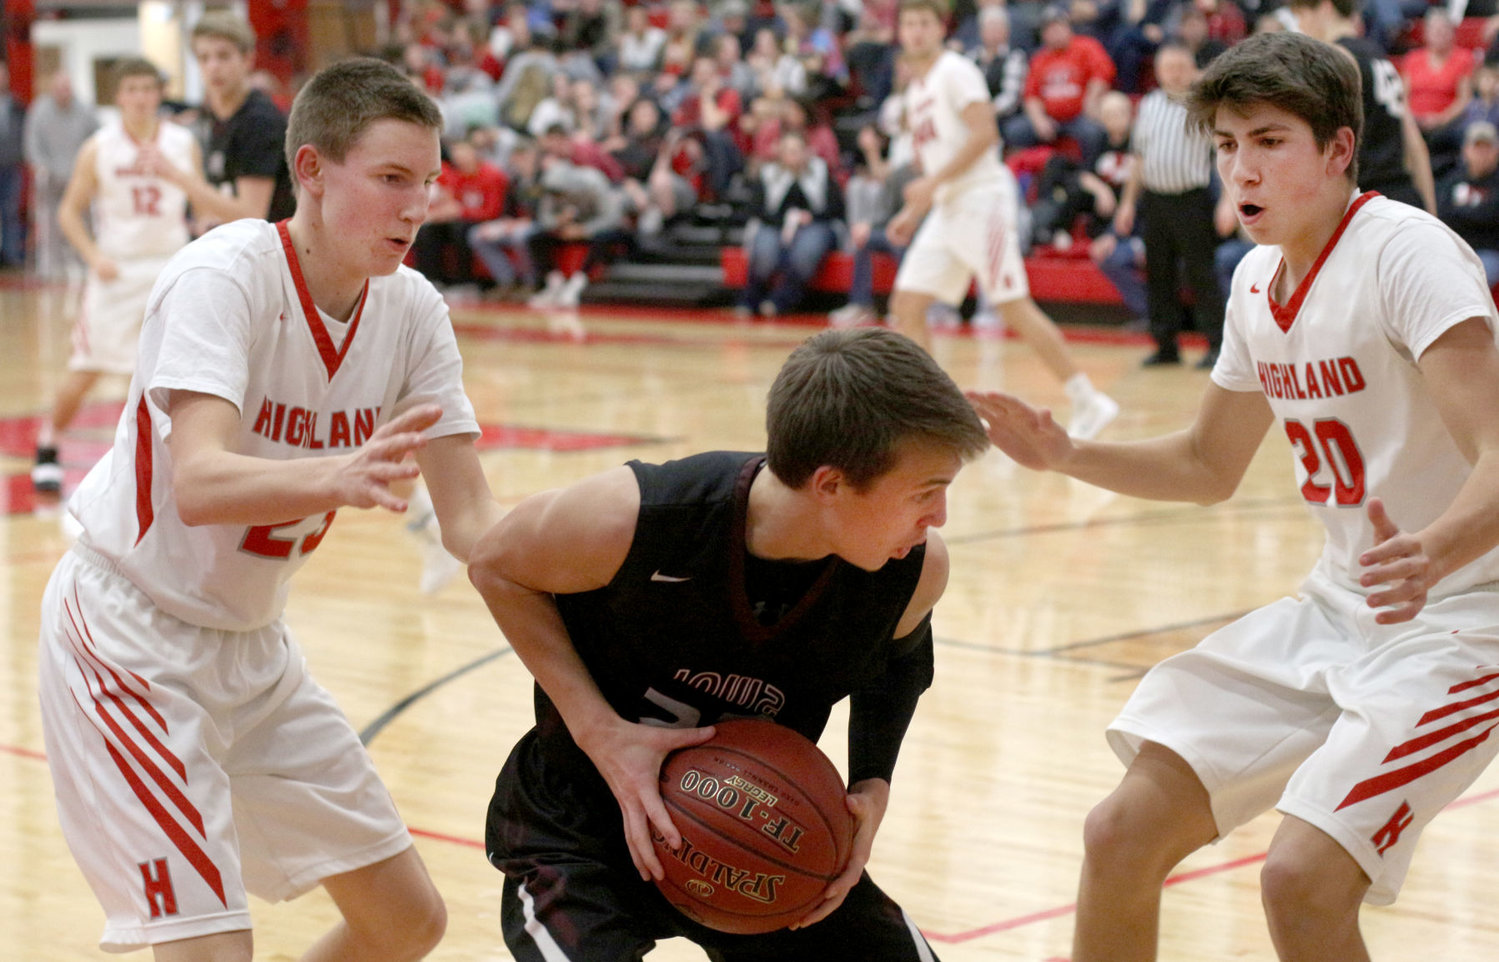 Iowa Mennonite Holds Off Highland After Trailing In First Half The News